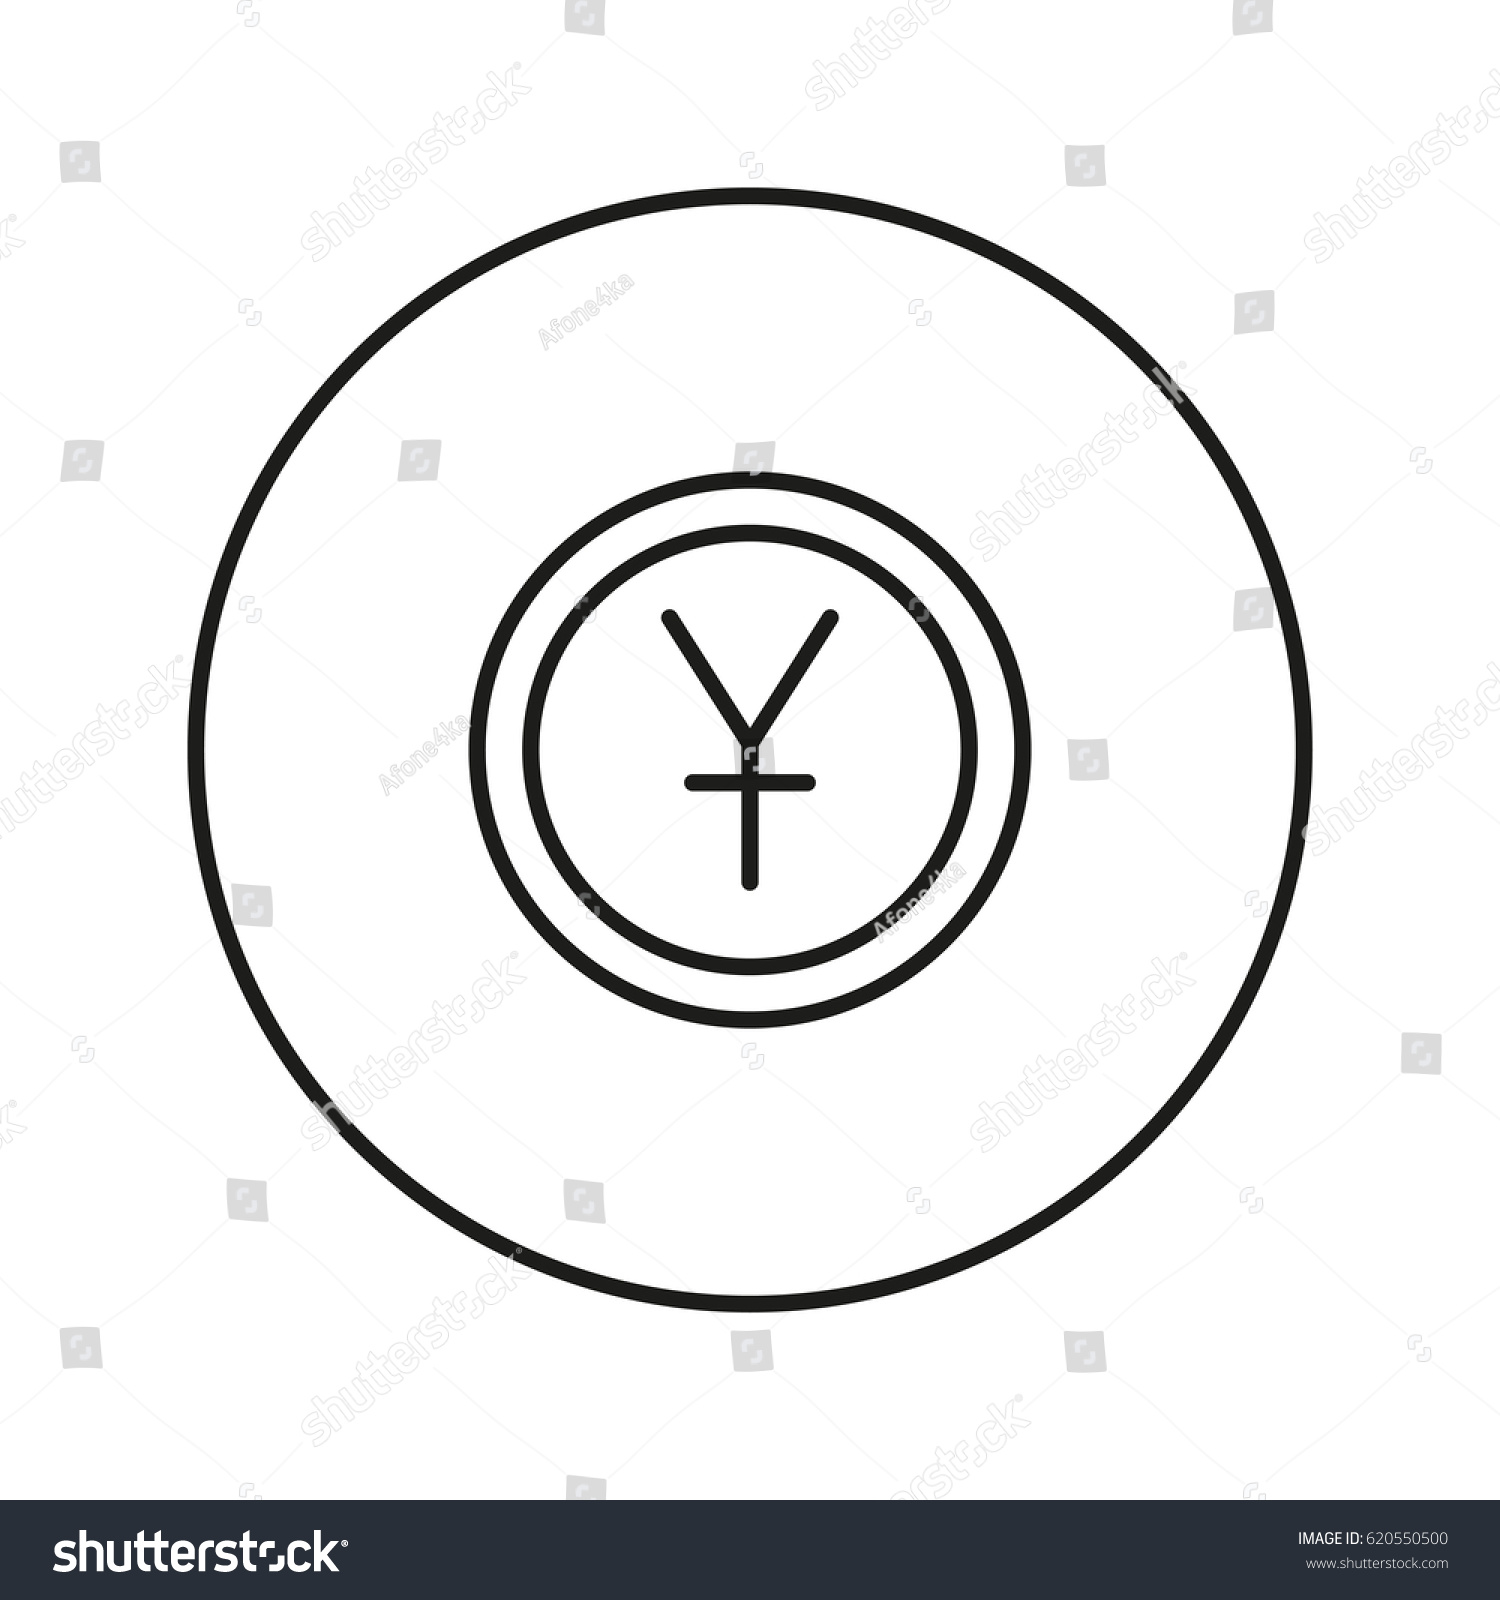 Money sign coin yuan icon web stock vector 620550500 shutterstock money sign coin yuan icon for web and mobile application vector illustration biocorpaavc Image collections